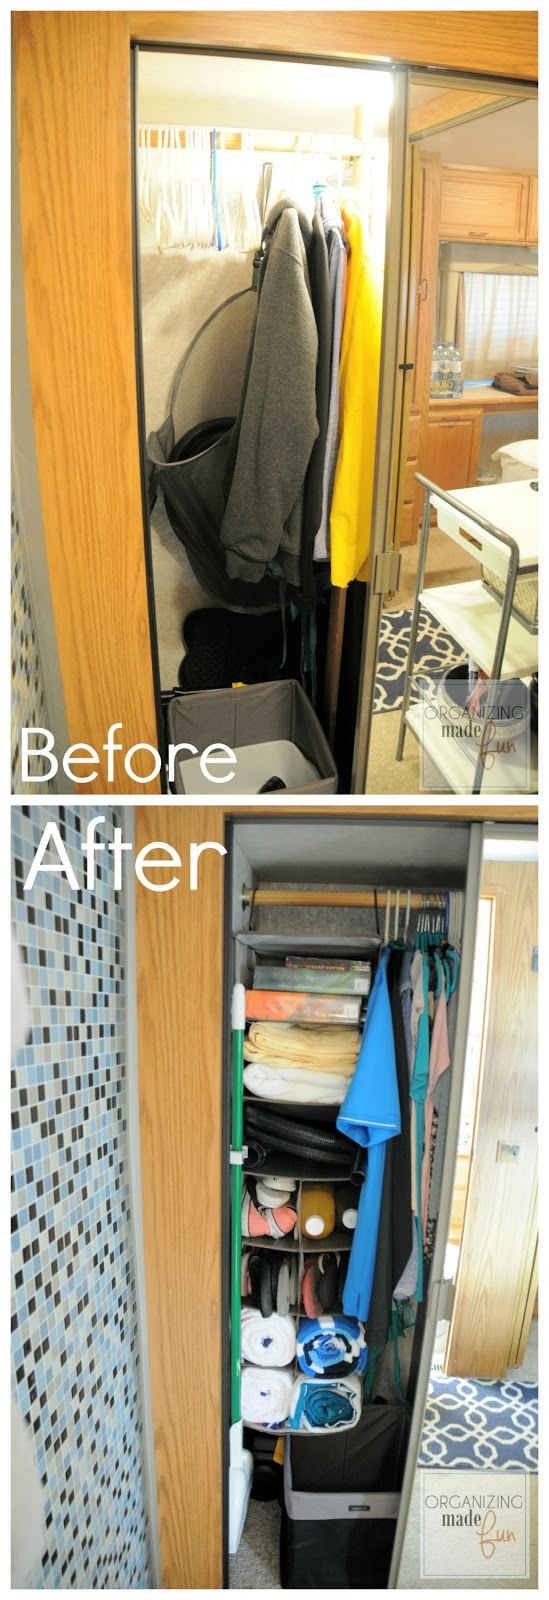 AFTER: Using Tidy Living 3+8 Compartment Hanging Organizer to maximize storage space in RV hallway closet